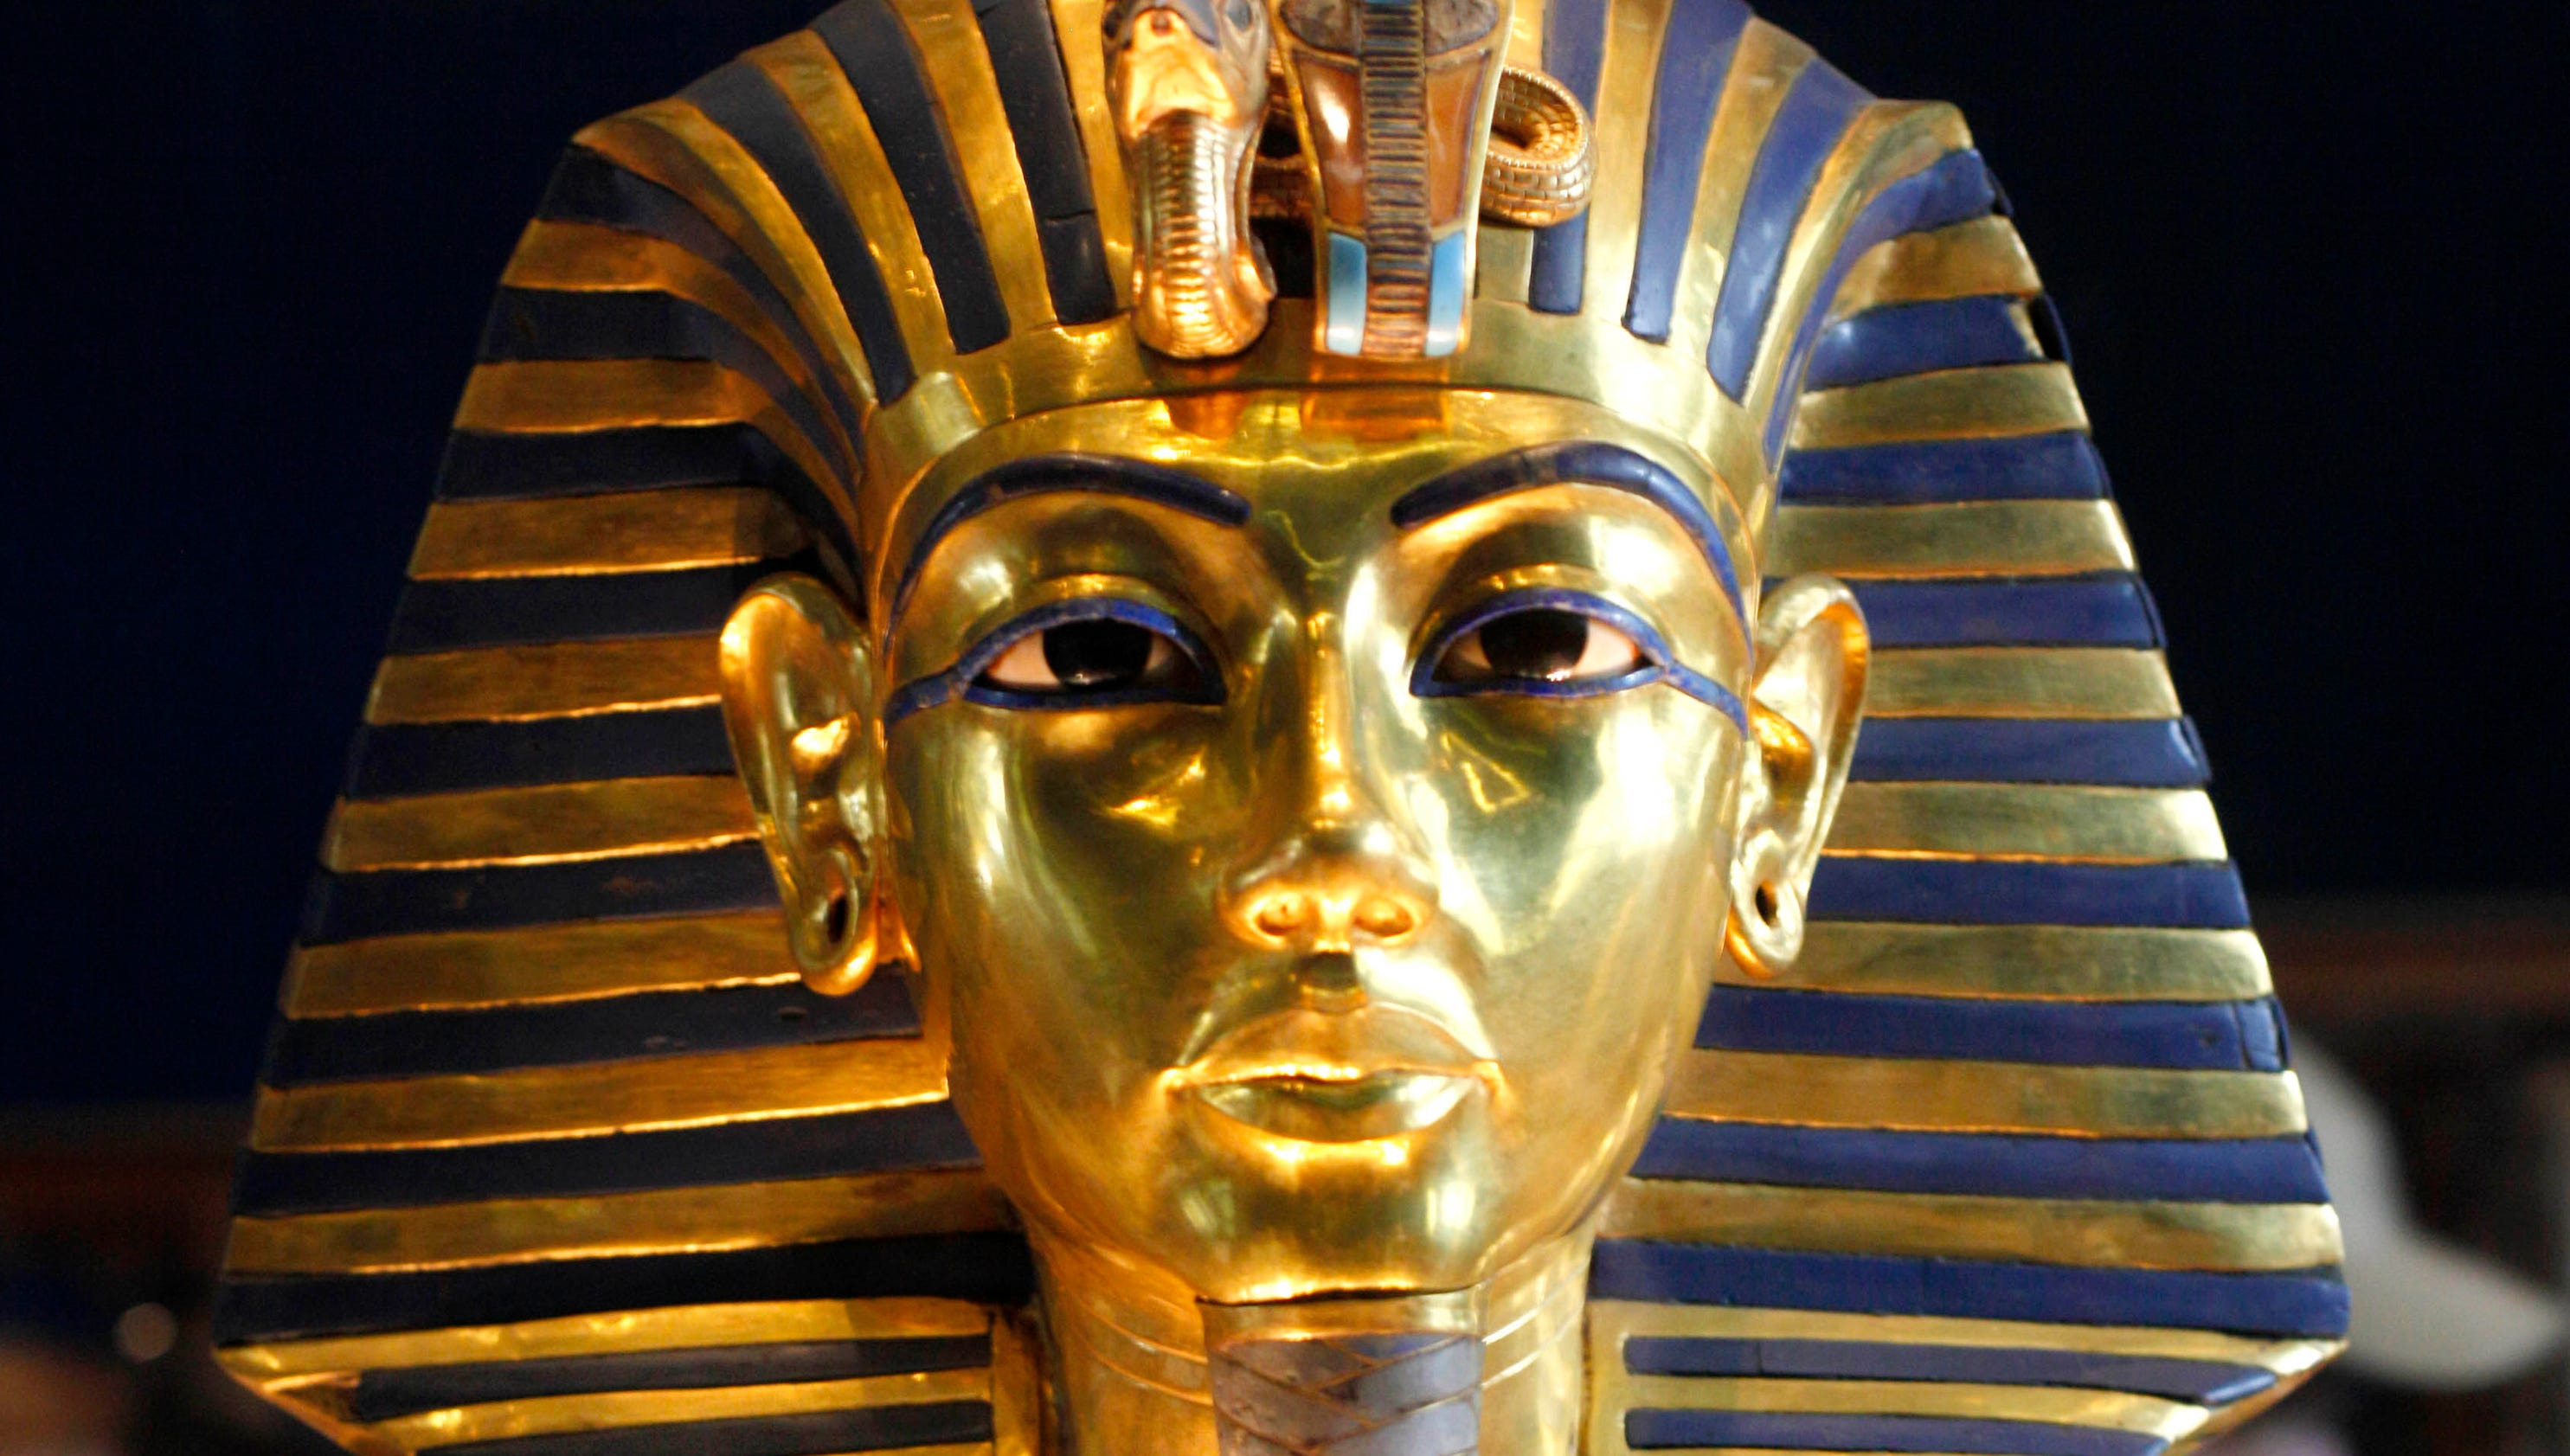 King Tut 'spontaneously combusted' in coffin